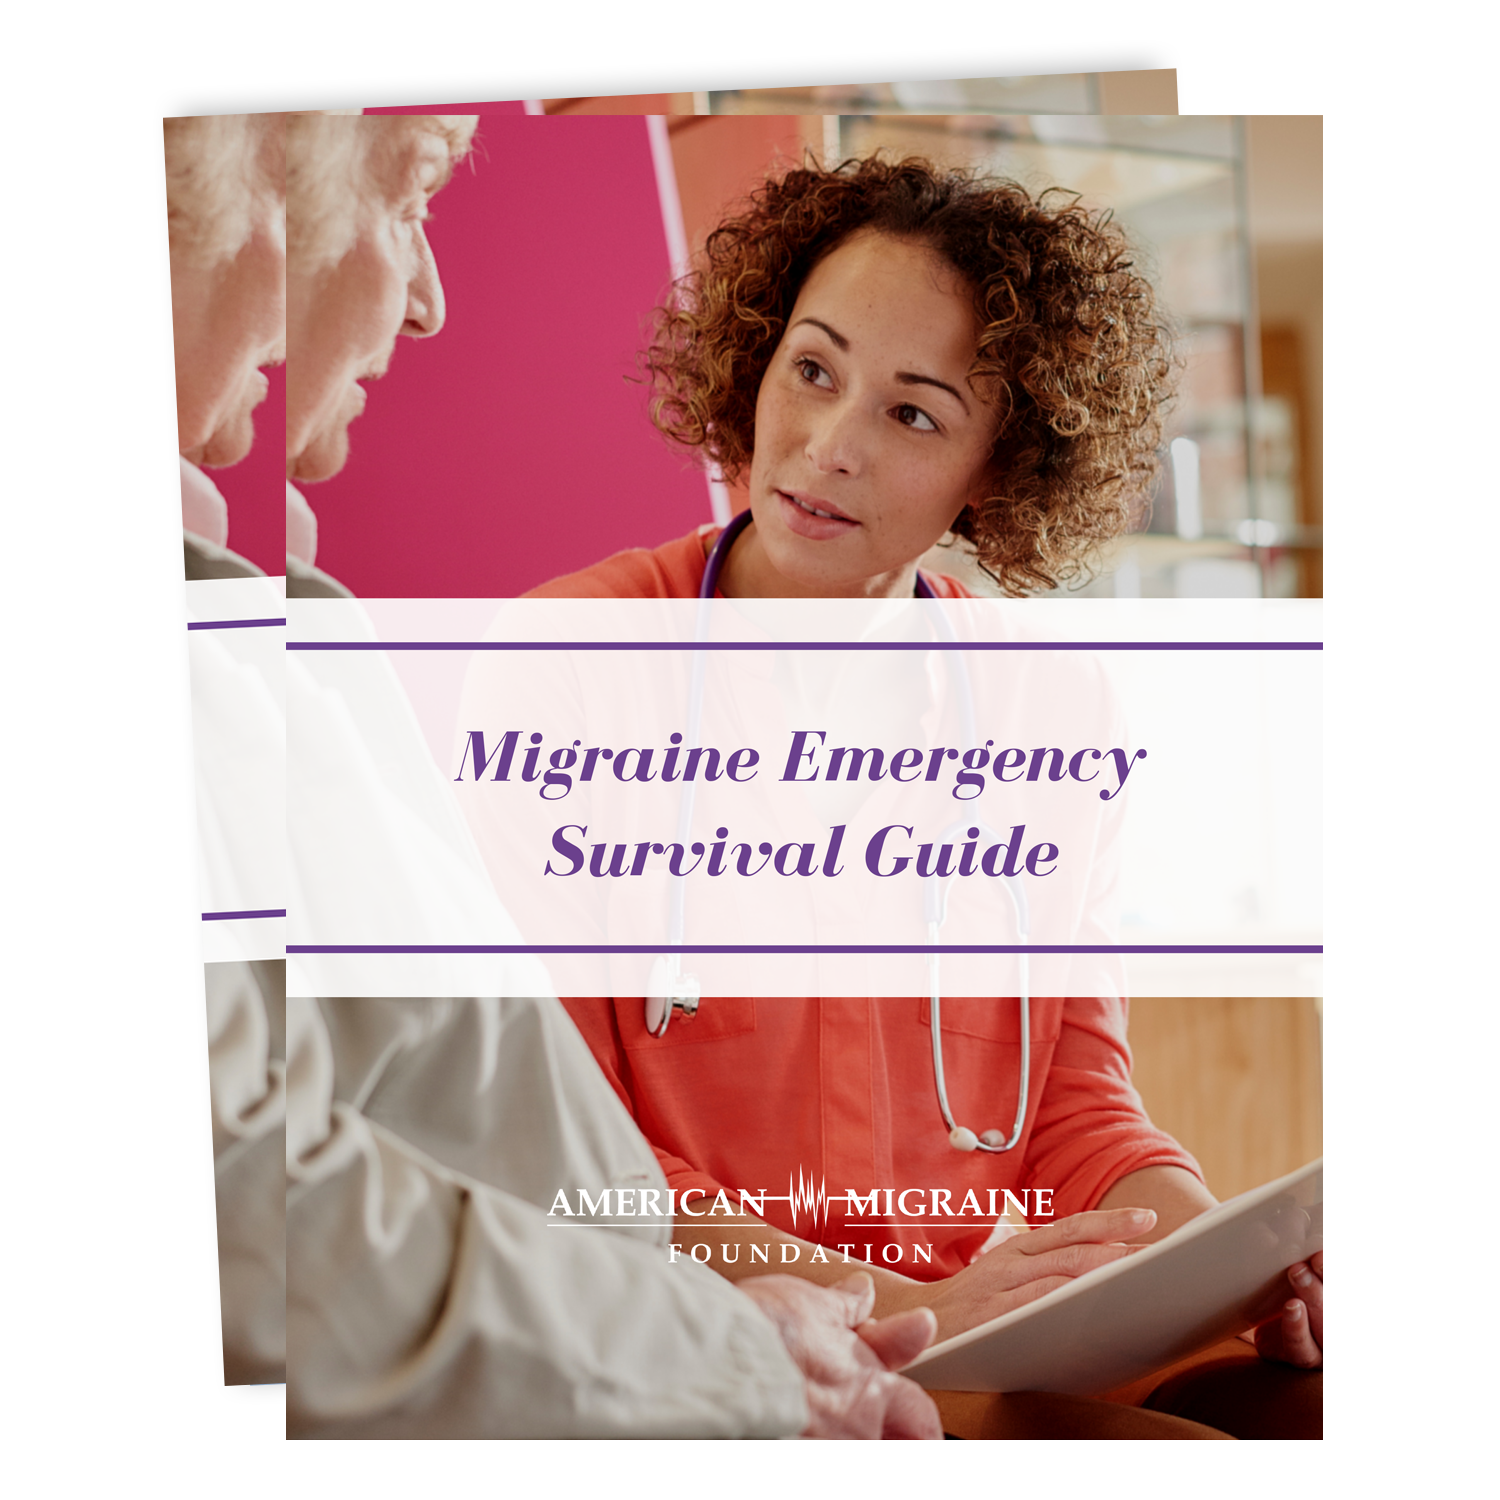 Migraine Emergency Survival Guide